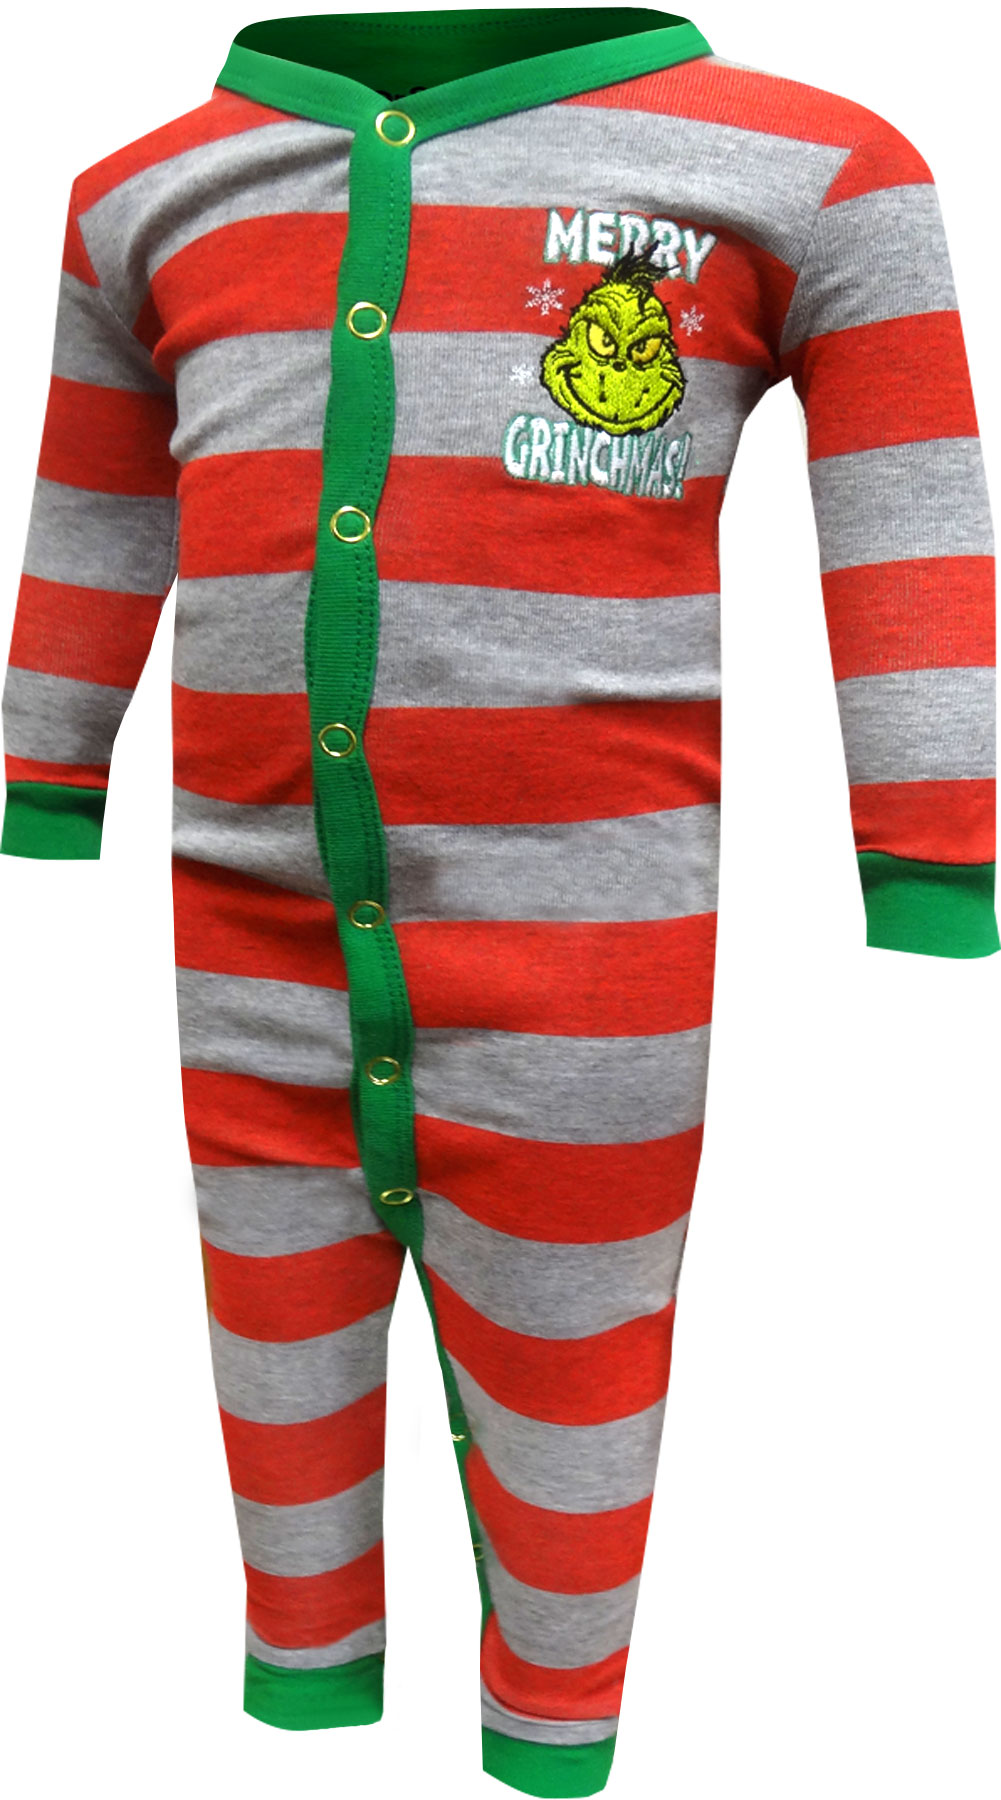 Image of Dr. Seuss The Grinch Merry Grinchmas Infant Union Suit Pajamas for boys